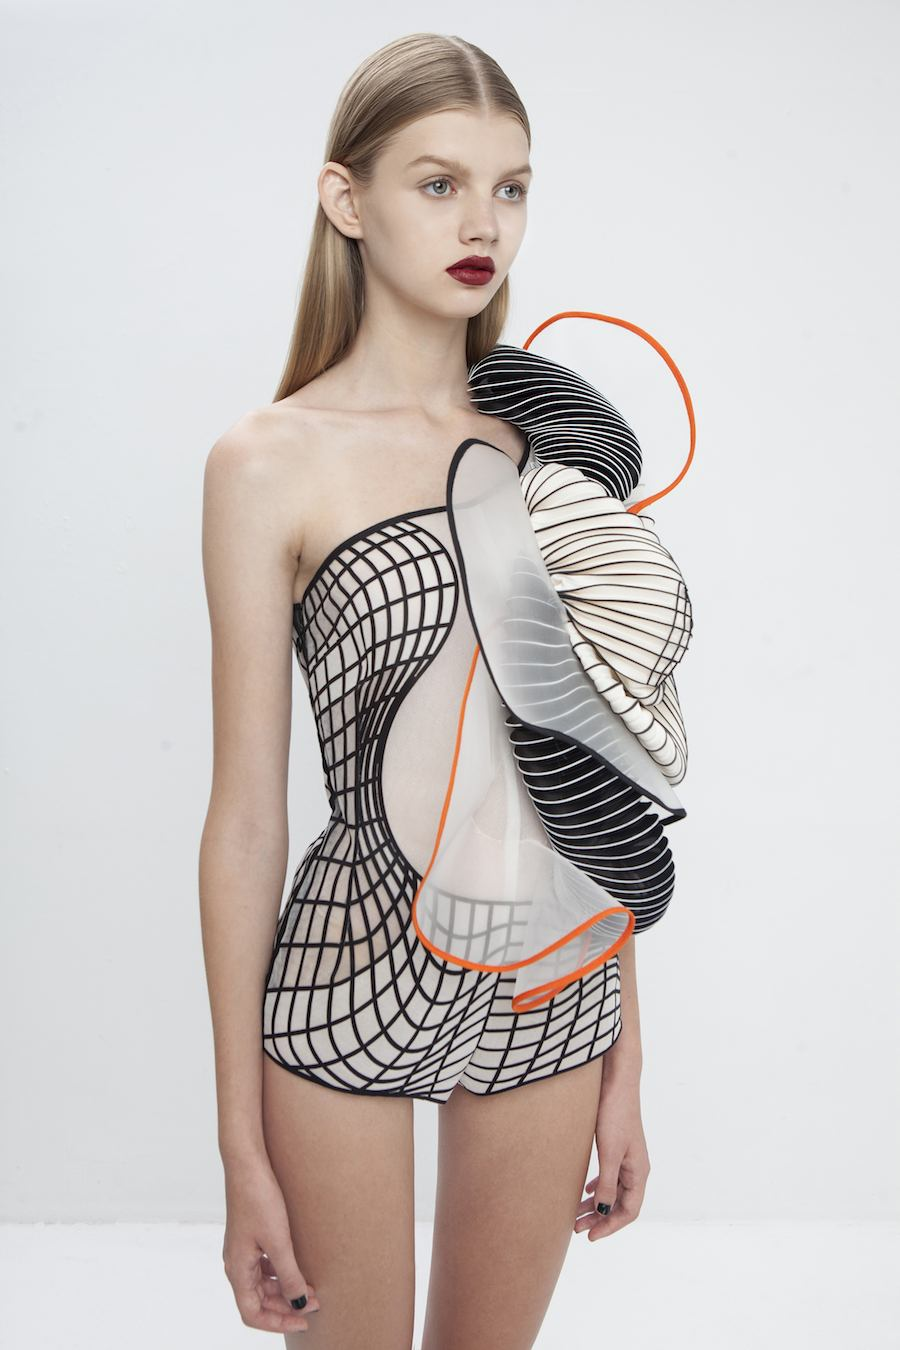 Bodysuit from Hard Copy collection by Noa Raviv - All photos: courtesy of Museum of Fine Arts, Boston.